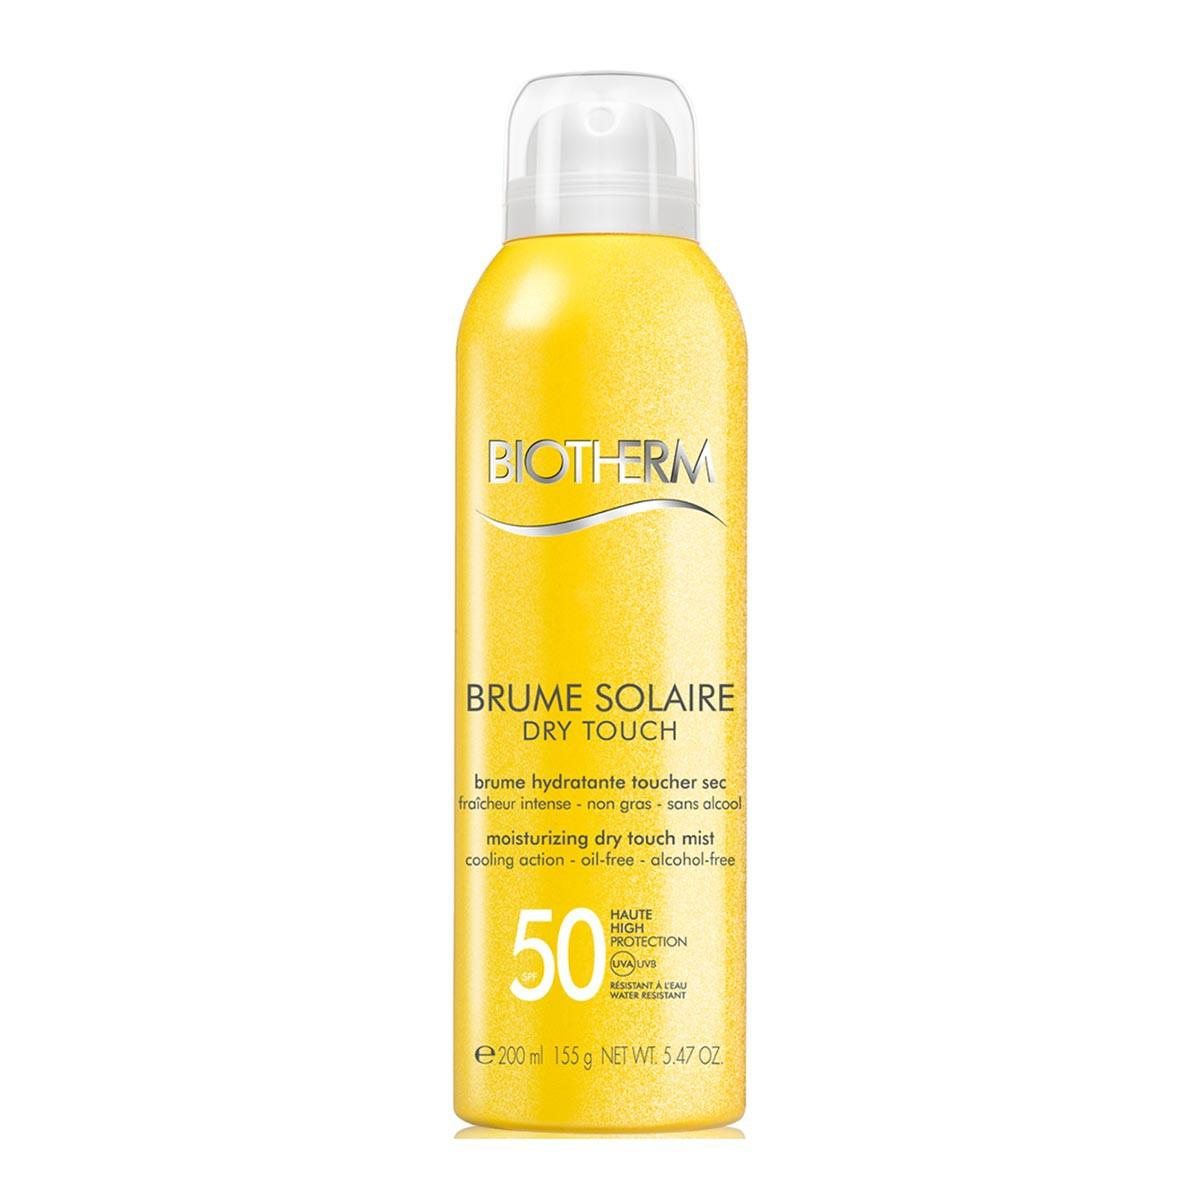 Biotherm-fragrances Brume Solaire Dry Touch Oil Free Spf50 200ml